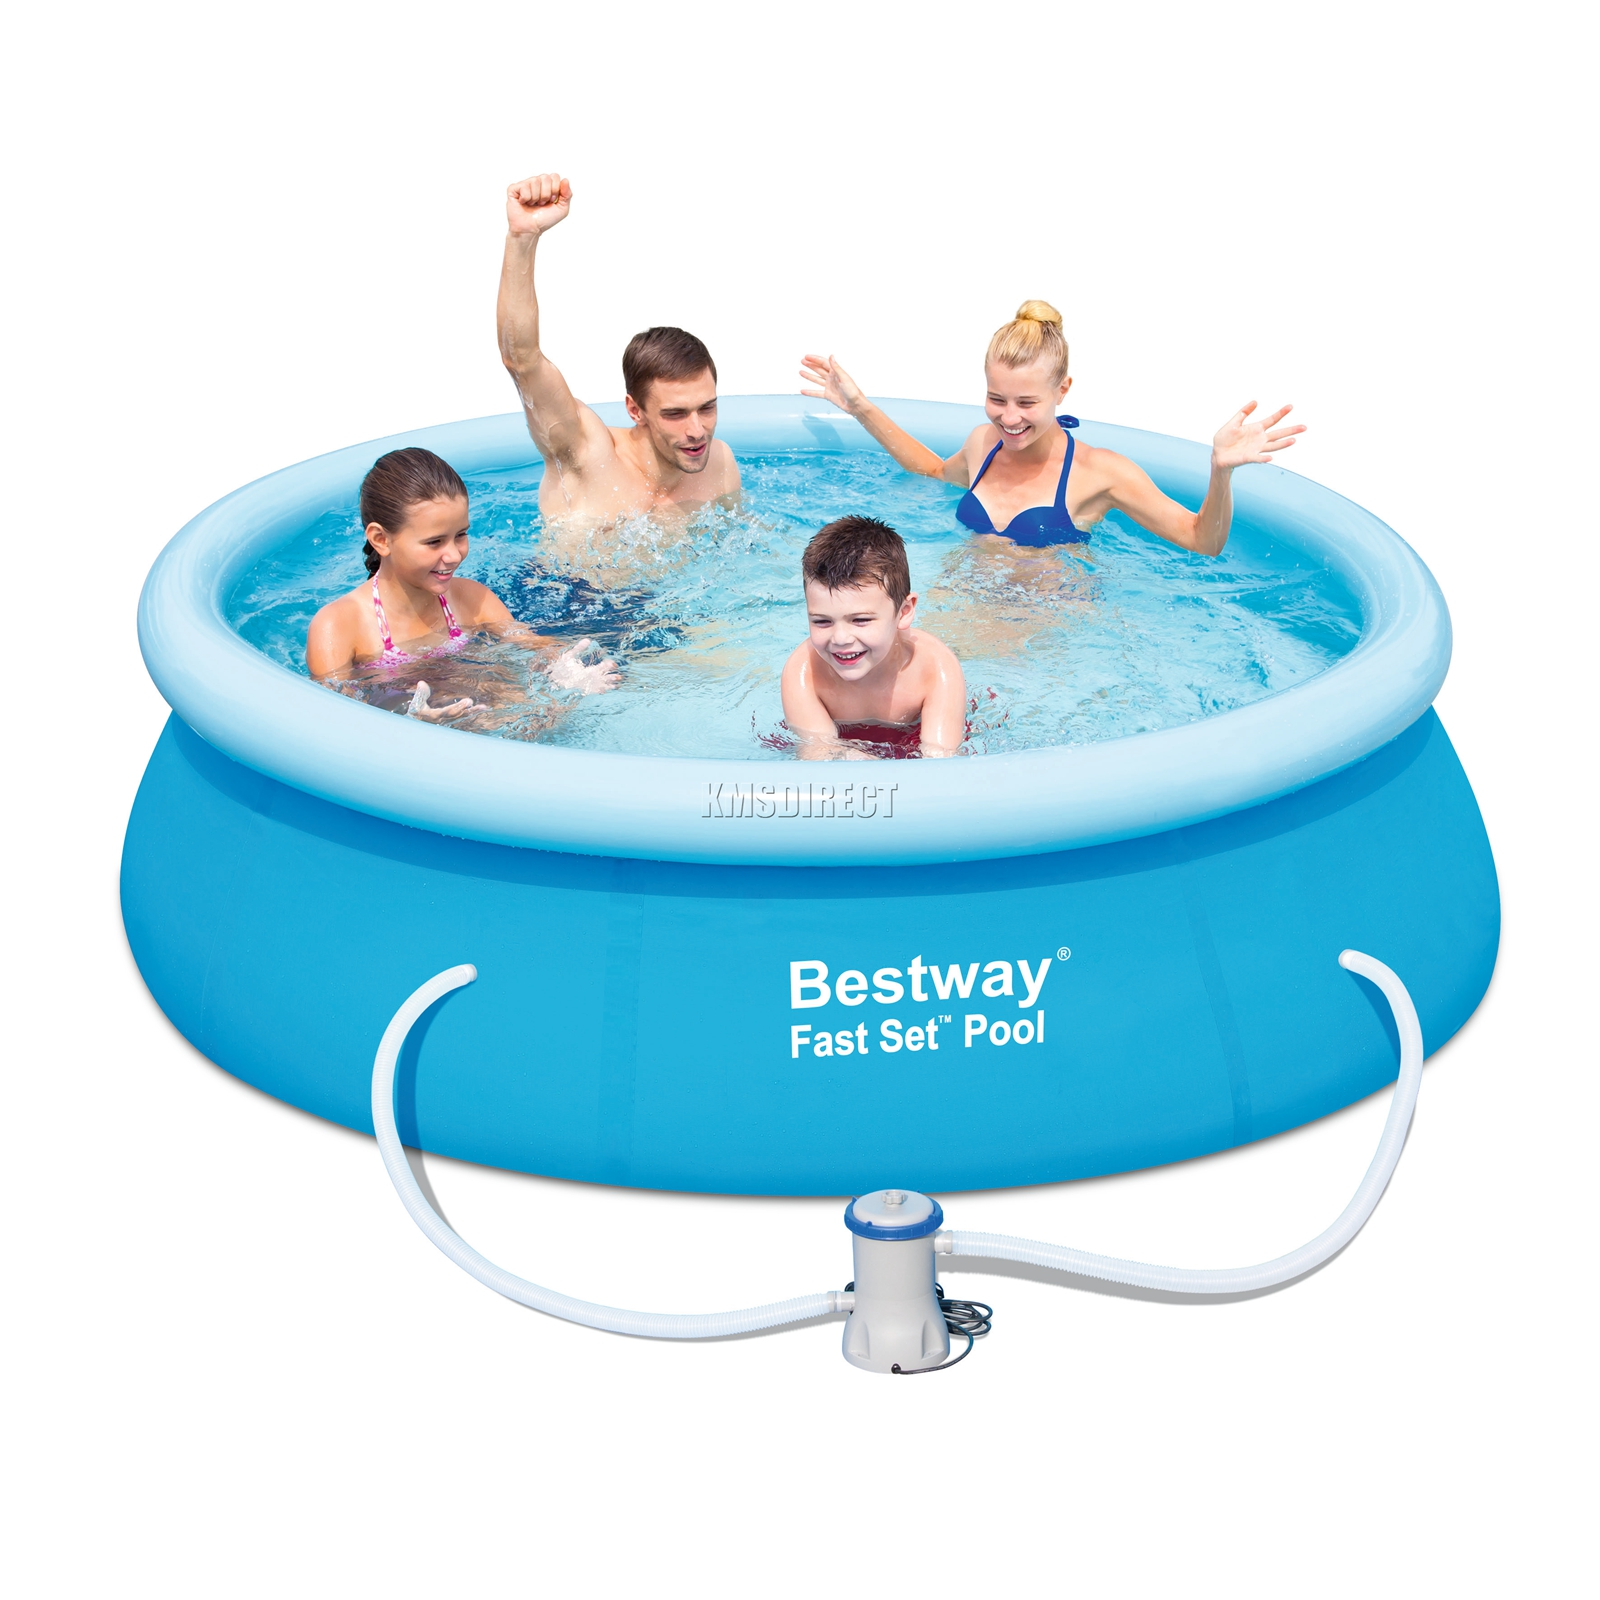 Bestway juego r pido piscina redondo inflable x 66cm for Piscina inflable bestway